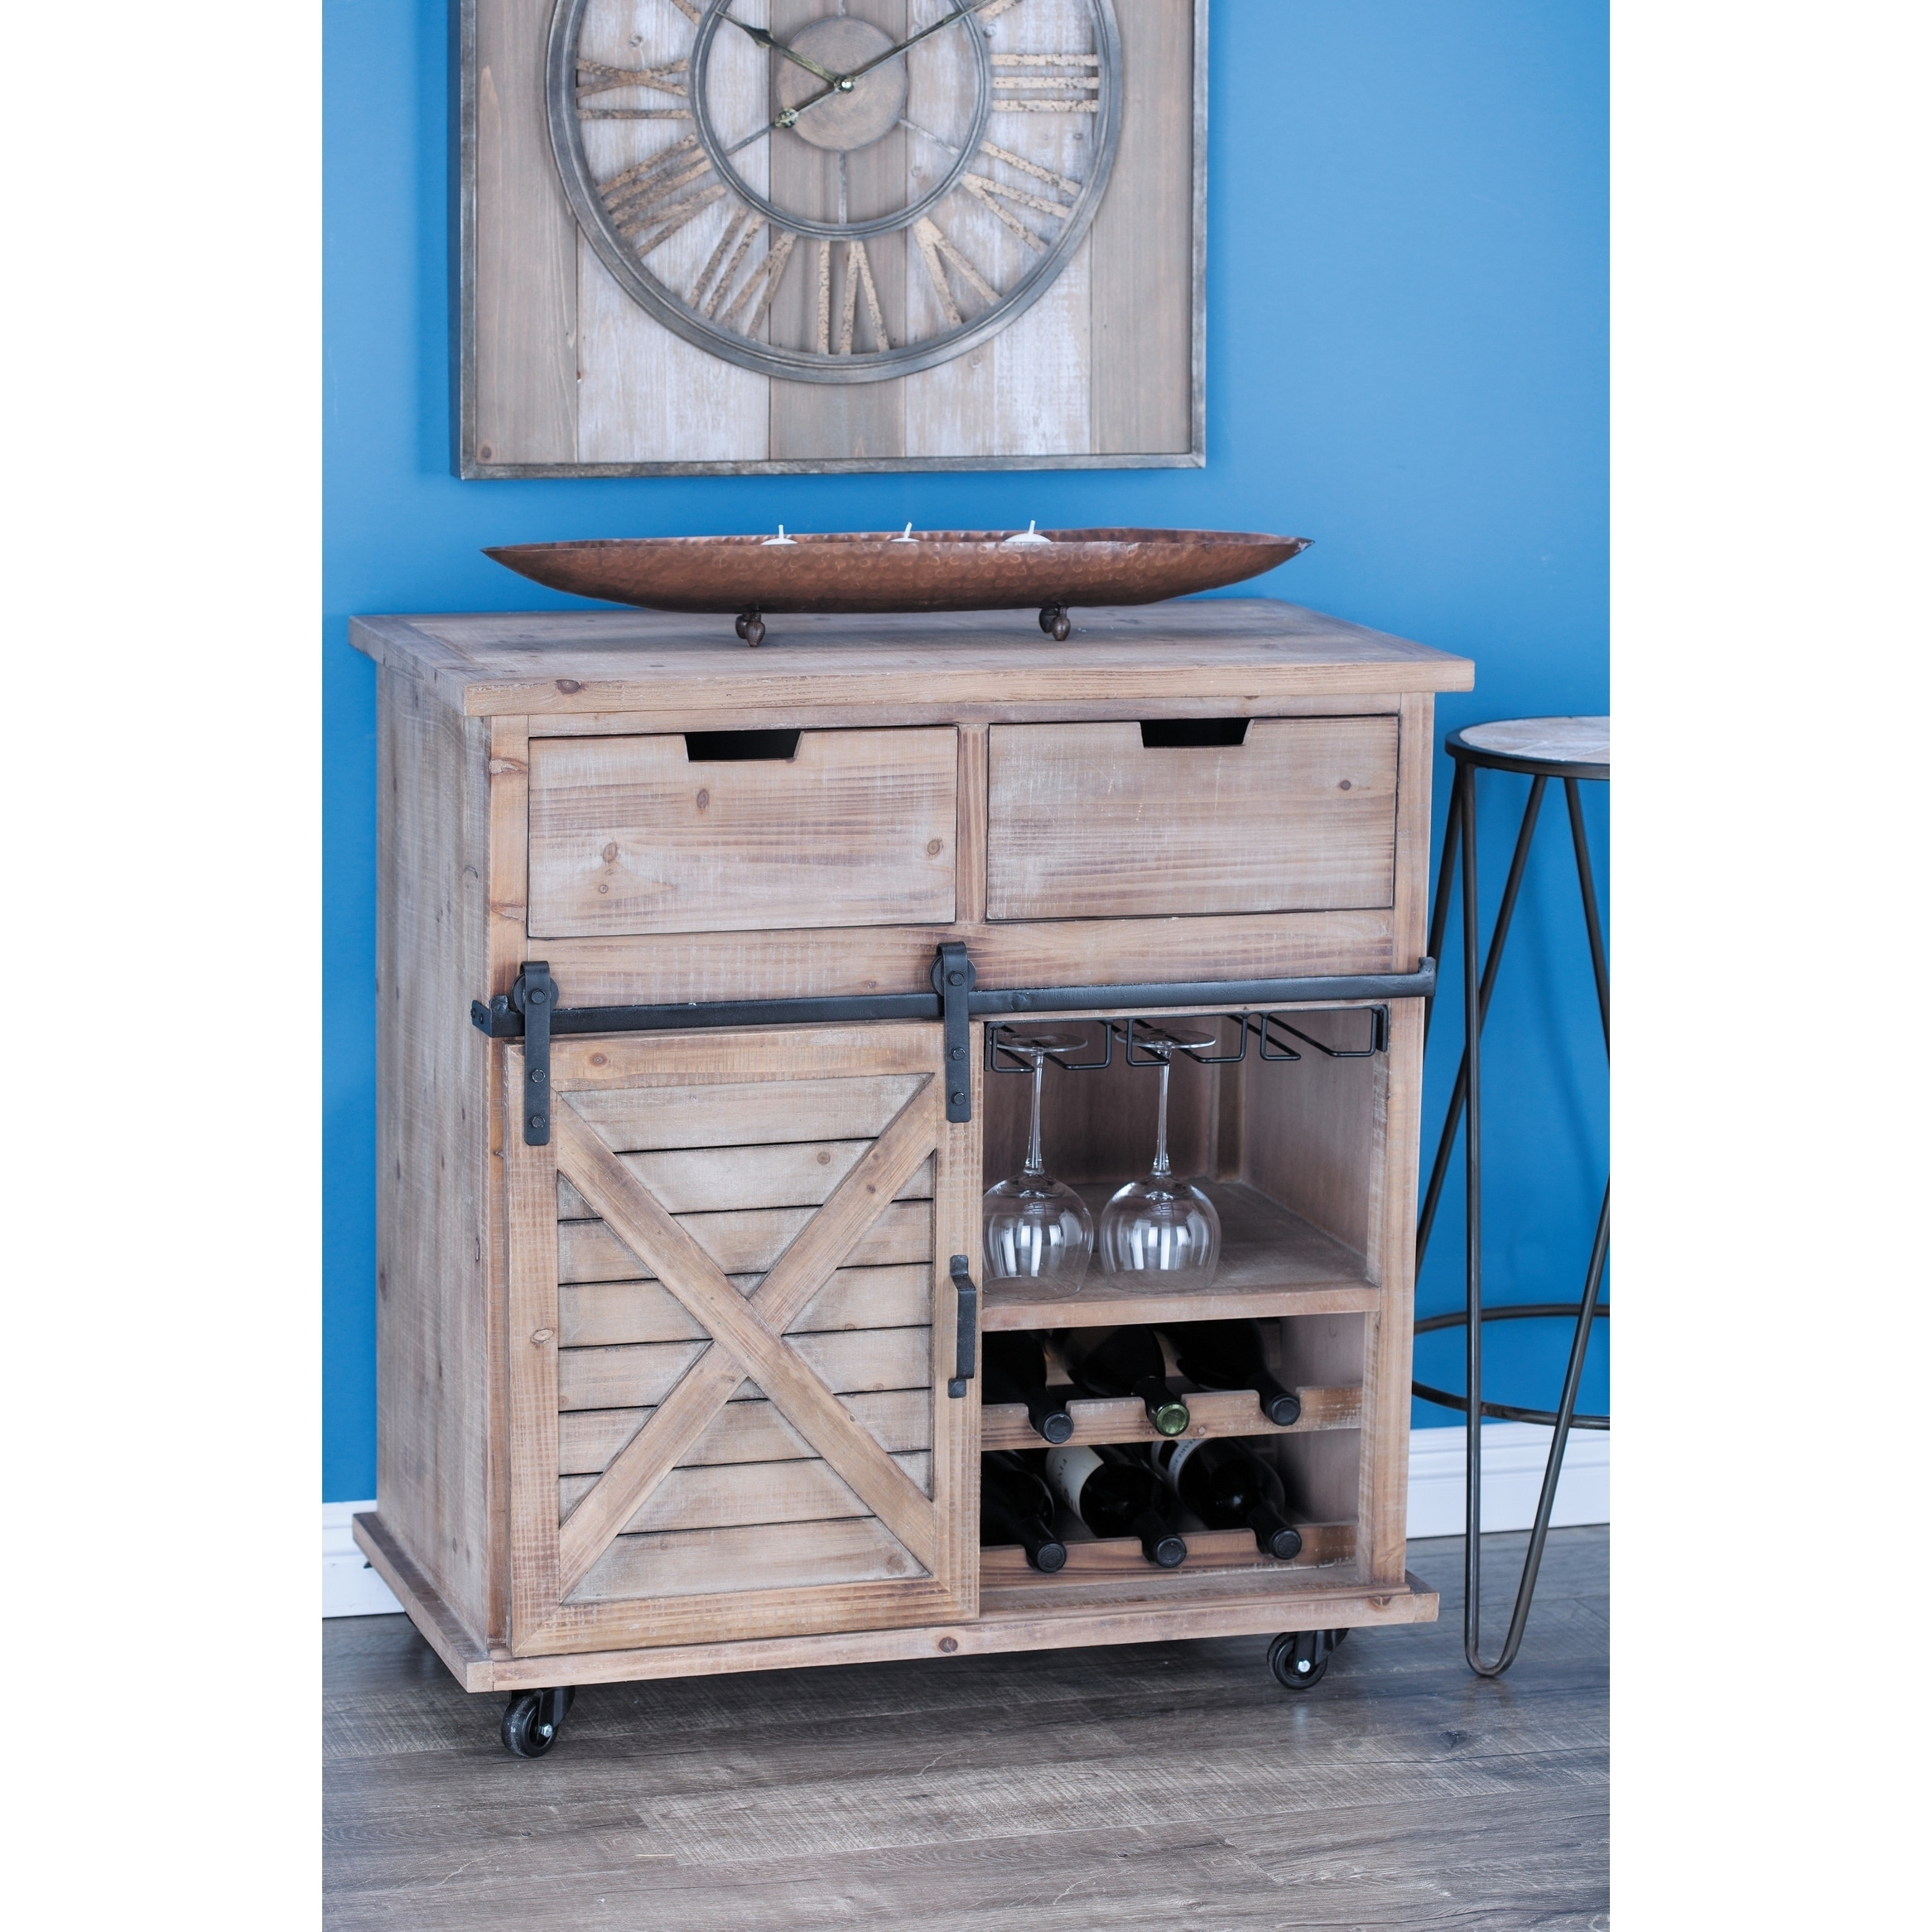 Studio 350 Wood Metal Storage Cabinet 33 inches wide, 34 inches